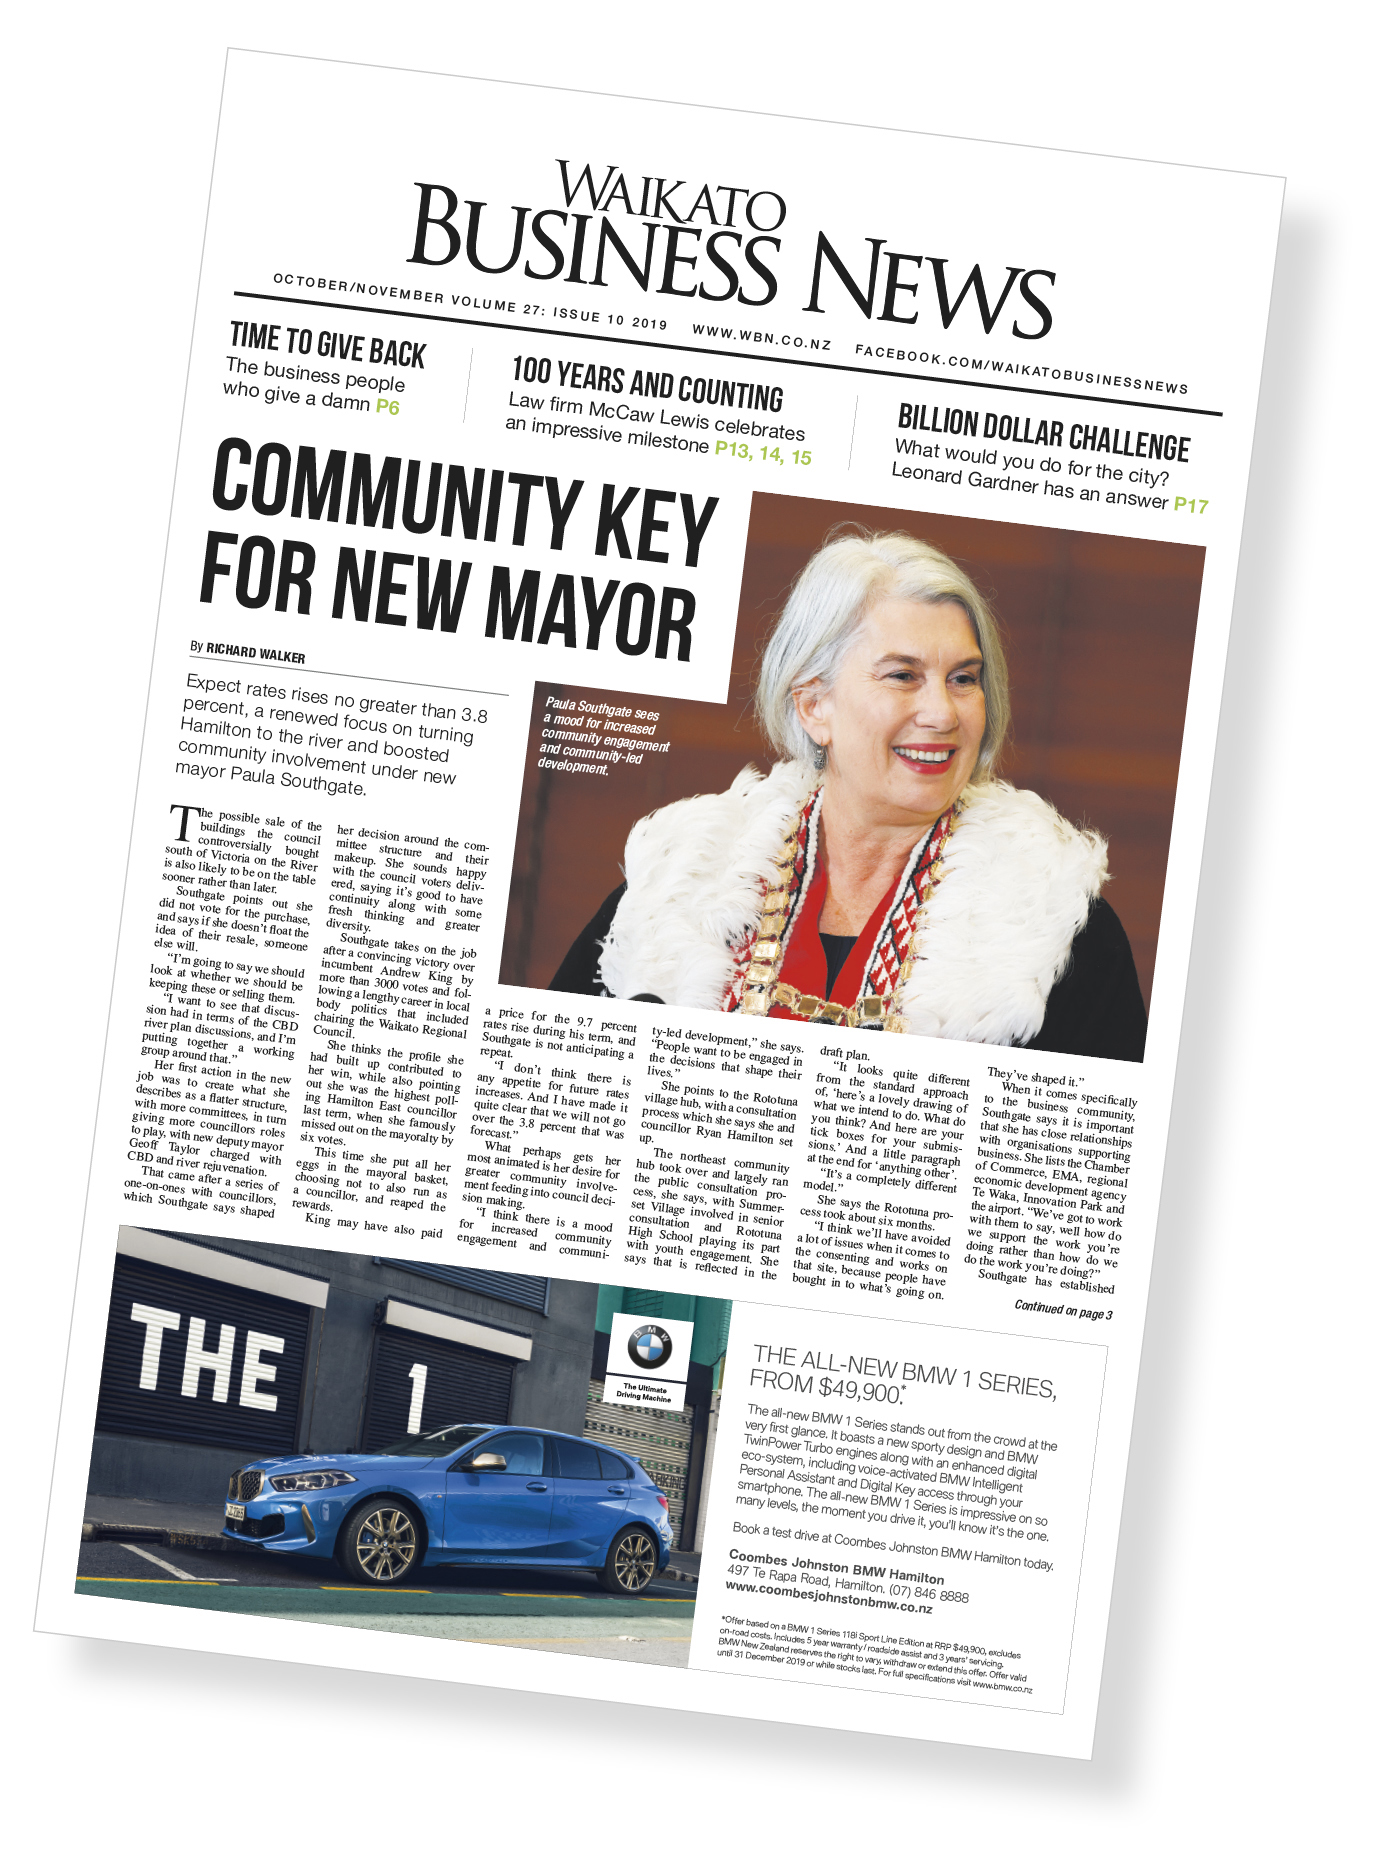 Waikato Business News October 2019